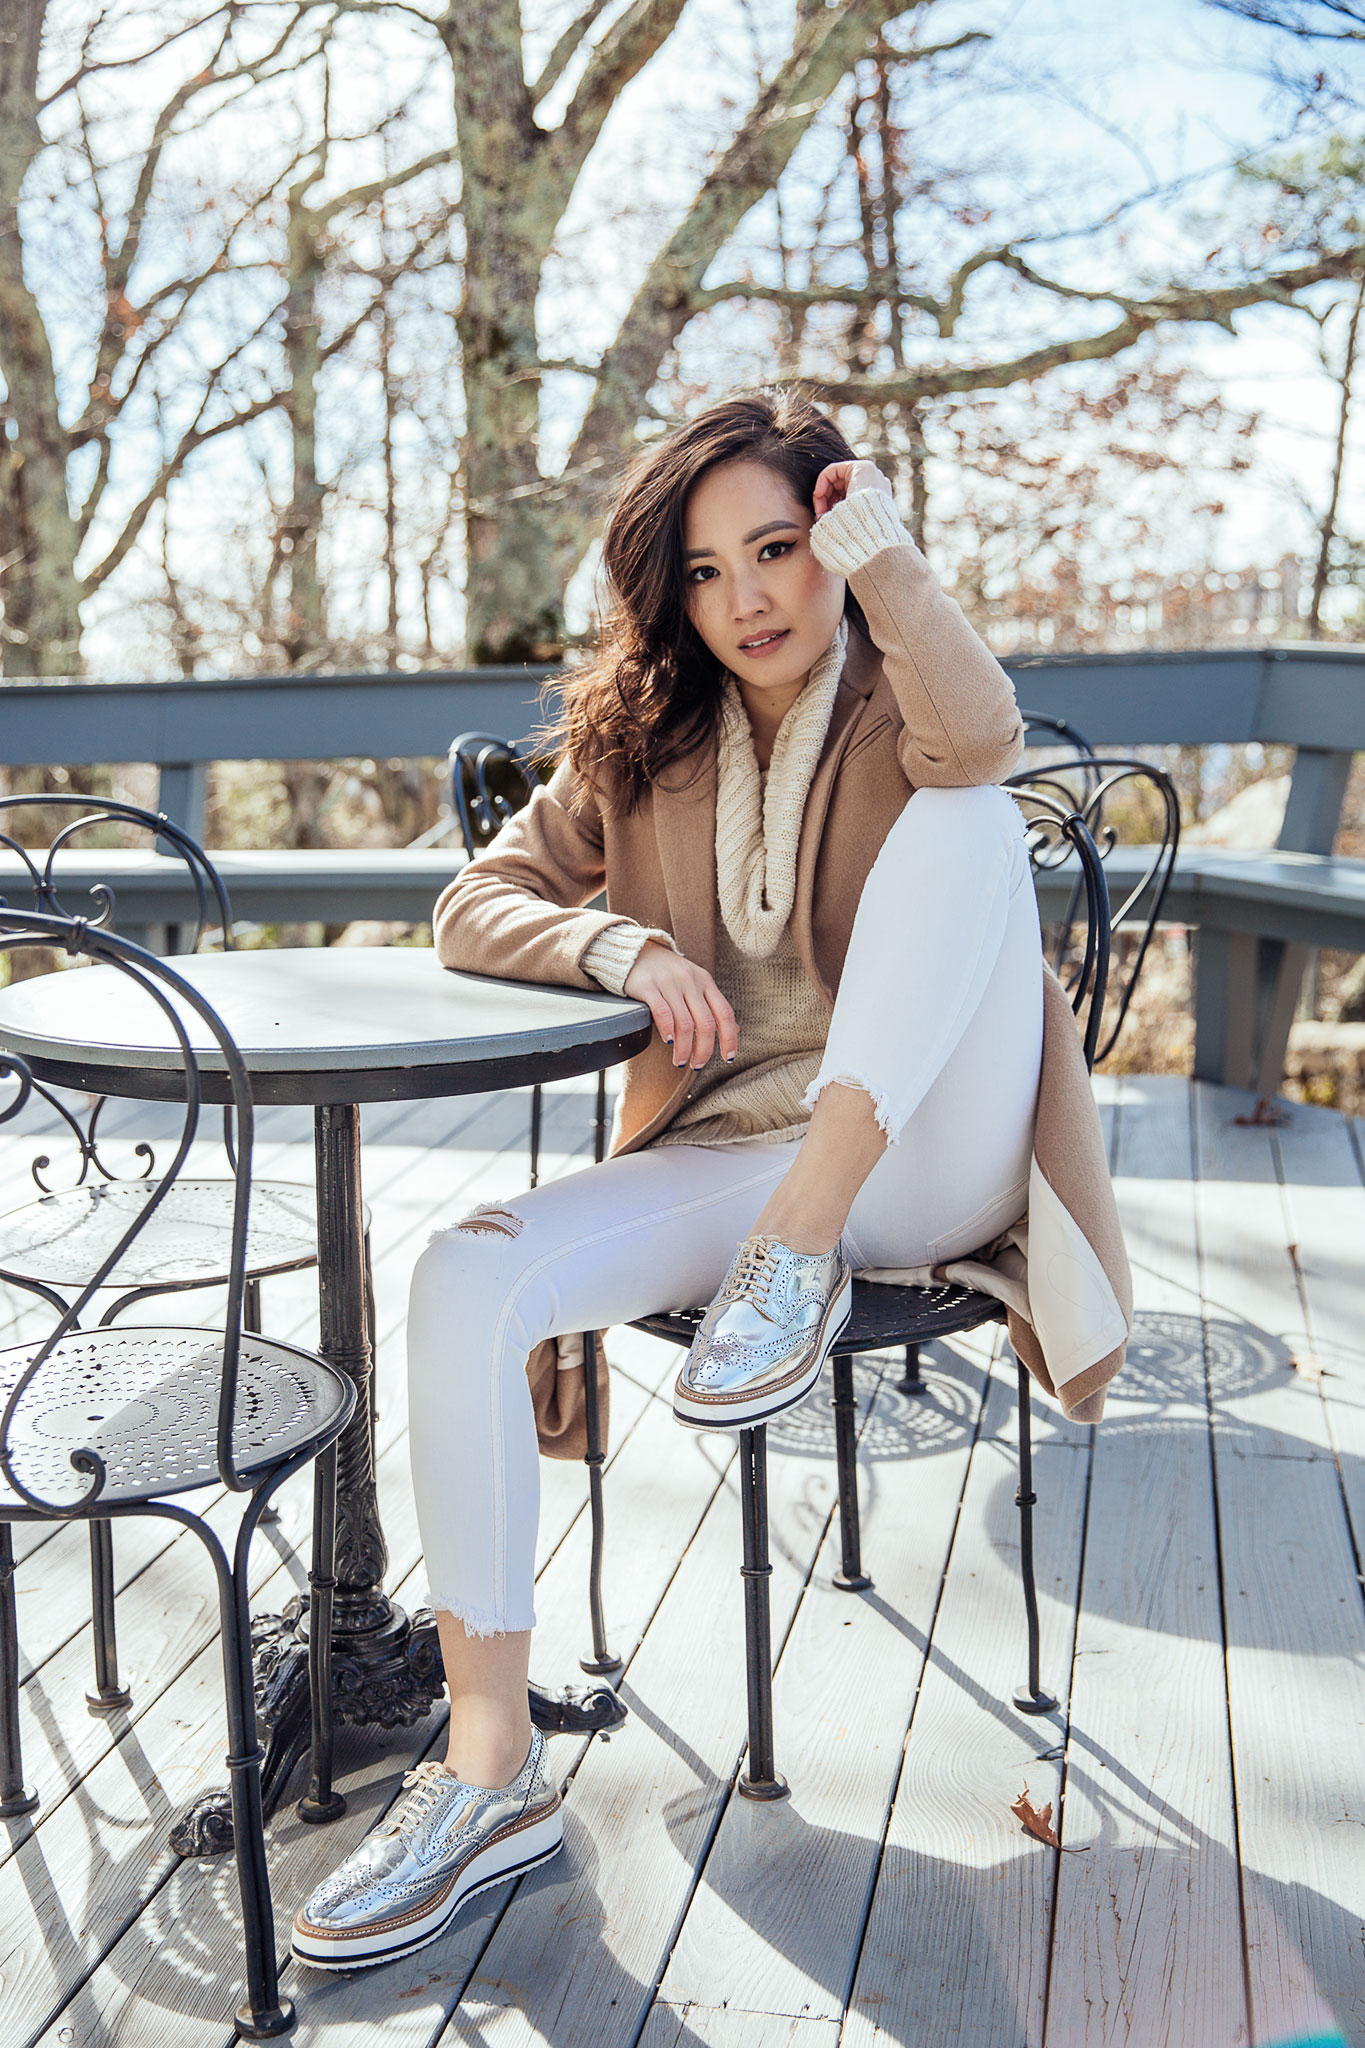 Fall Outfit - Camel Coat with White Jeans & Silver Oxfords   le-jolie.com